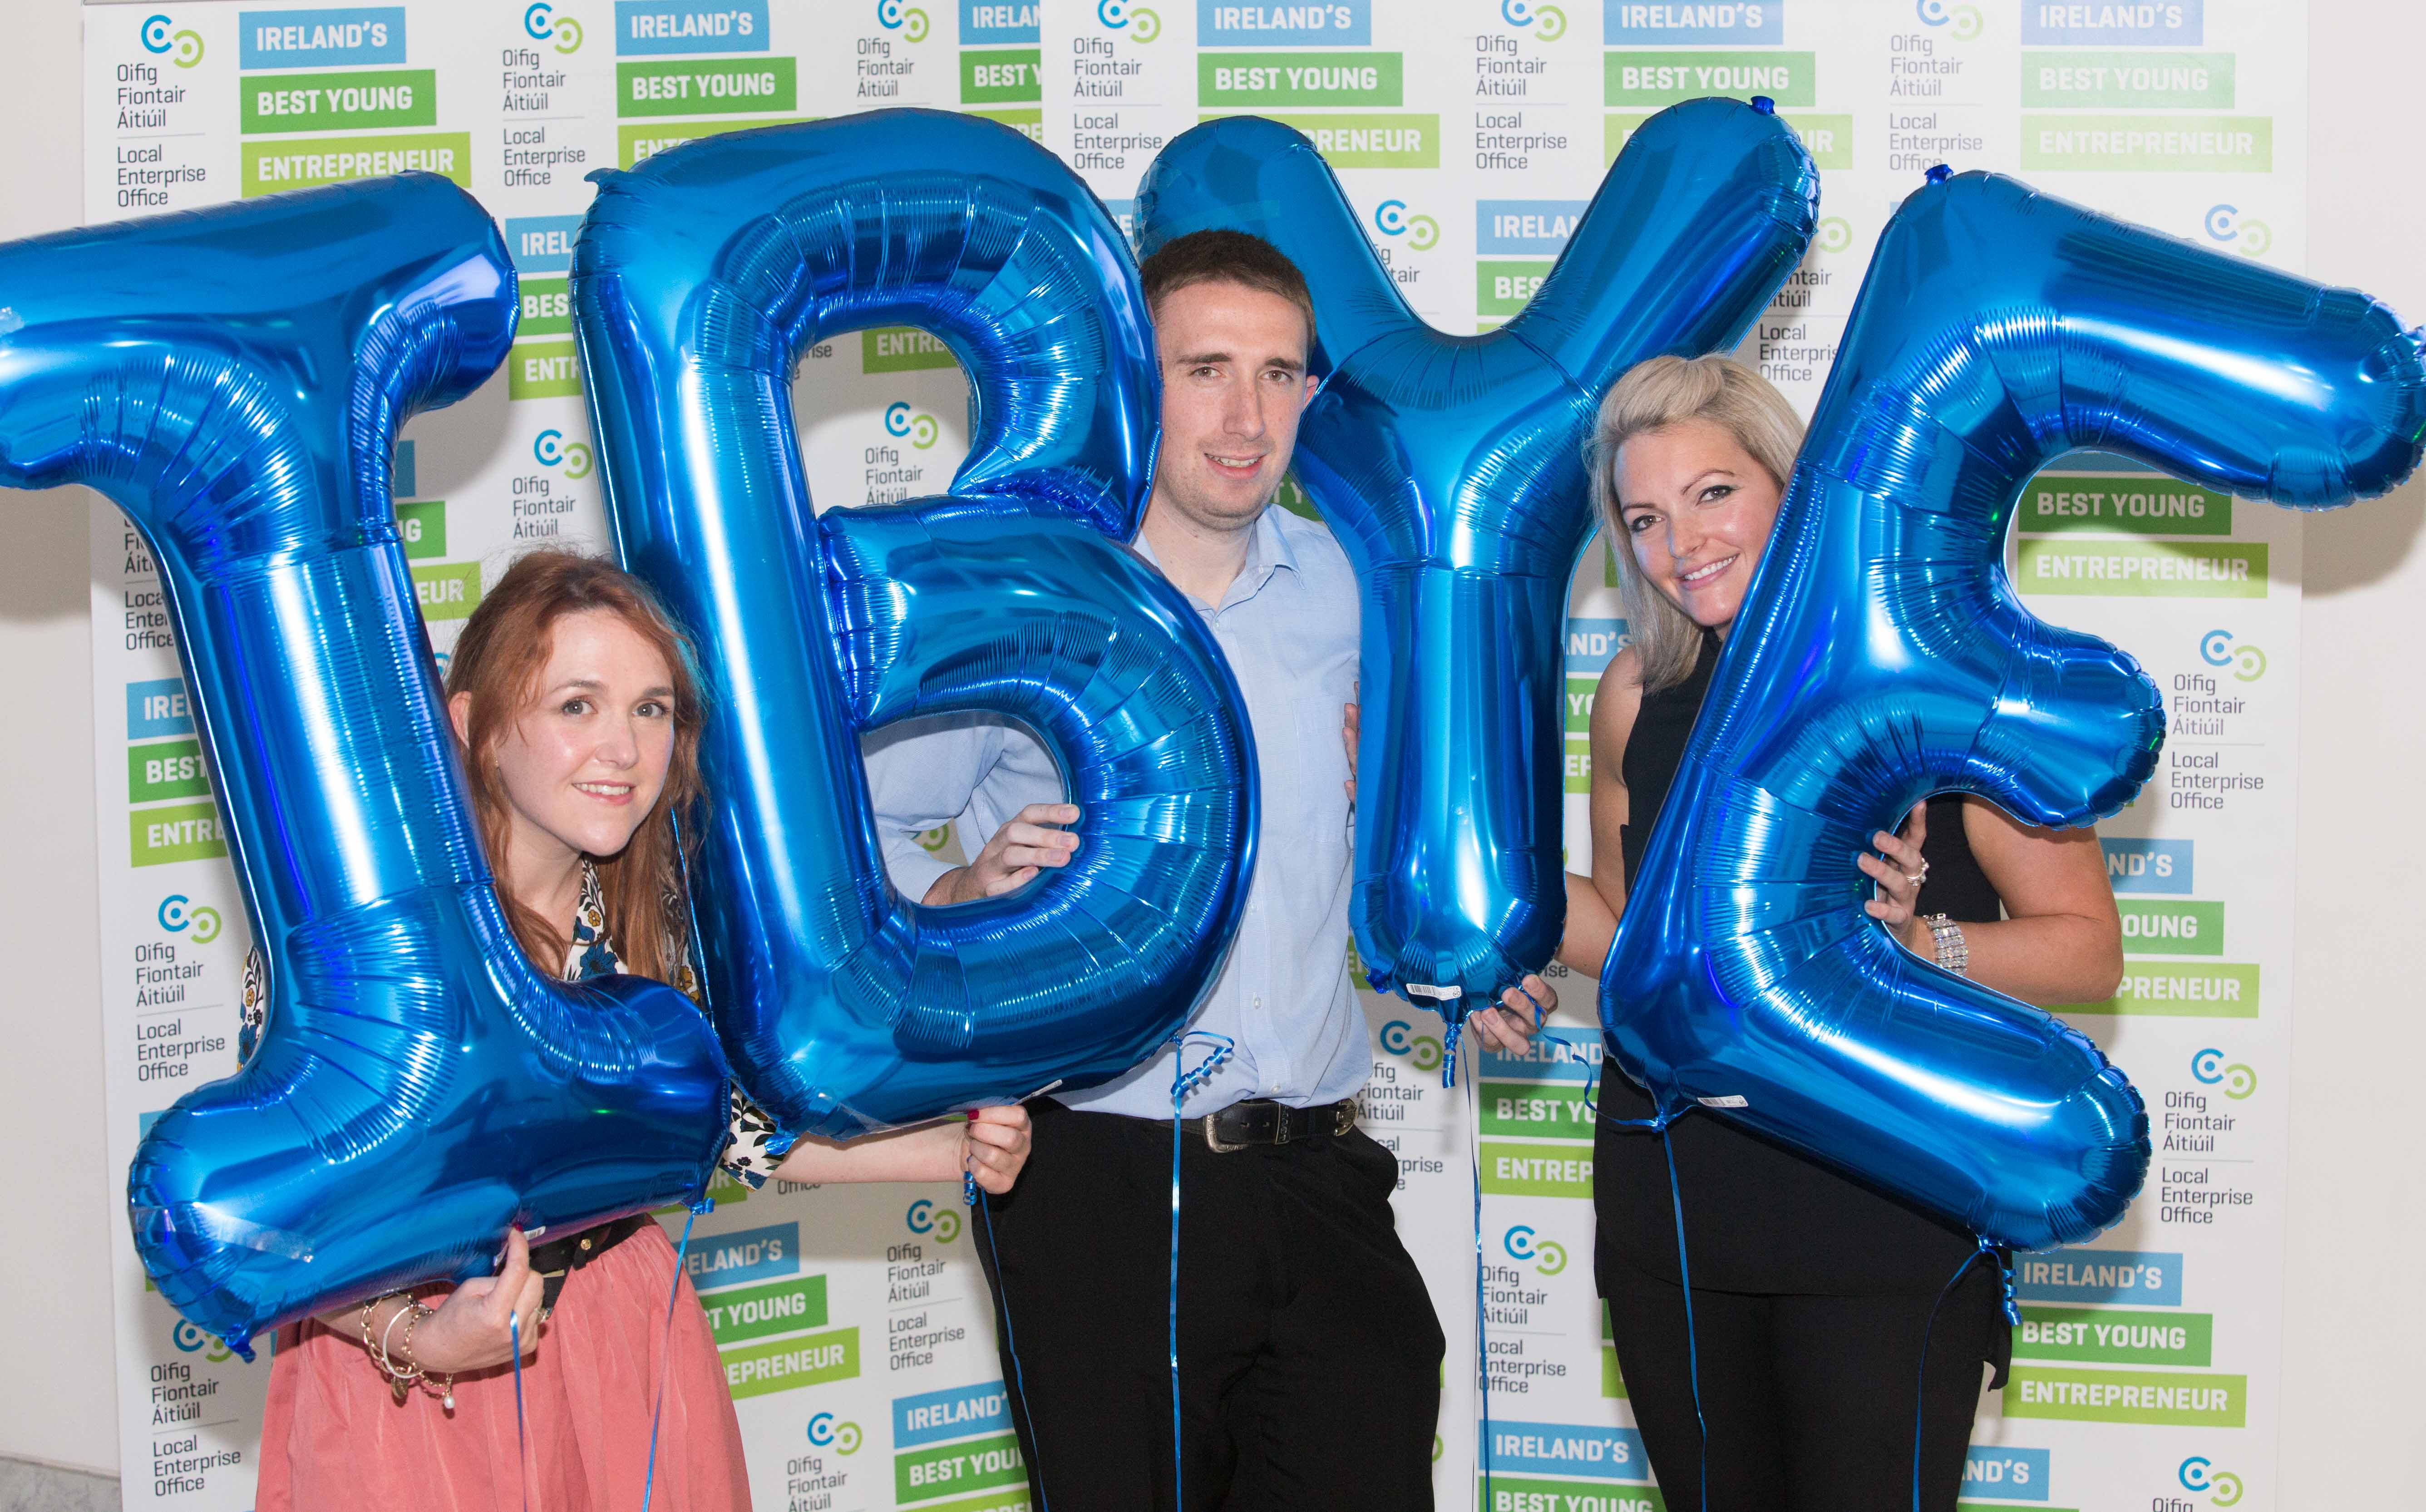 Who are Cork's Best Young Entrepreneurs?